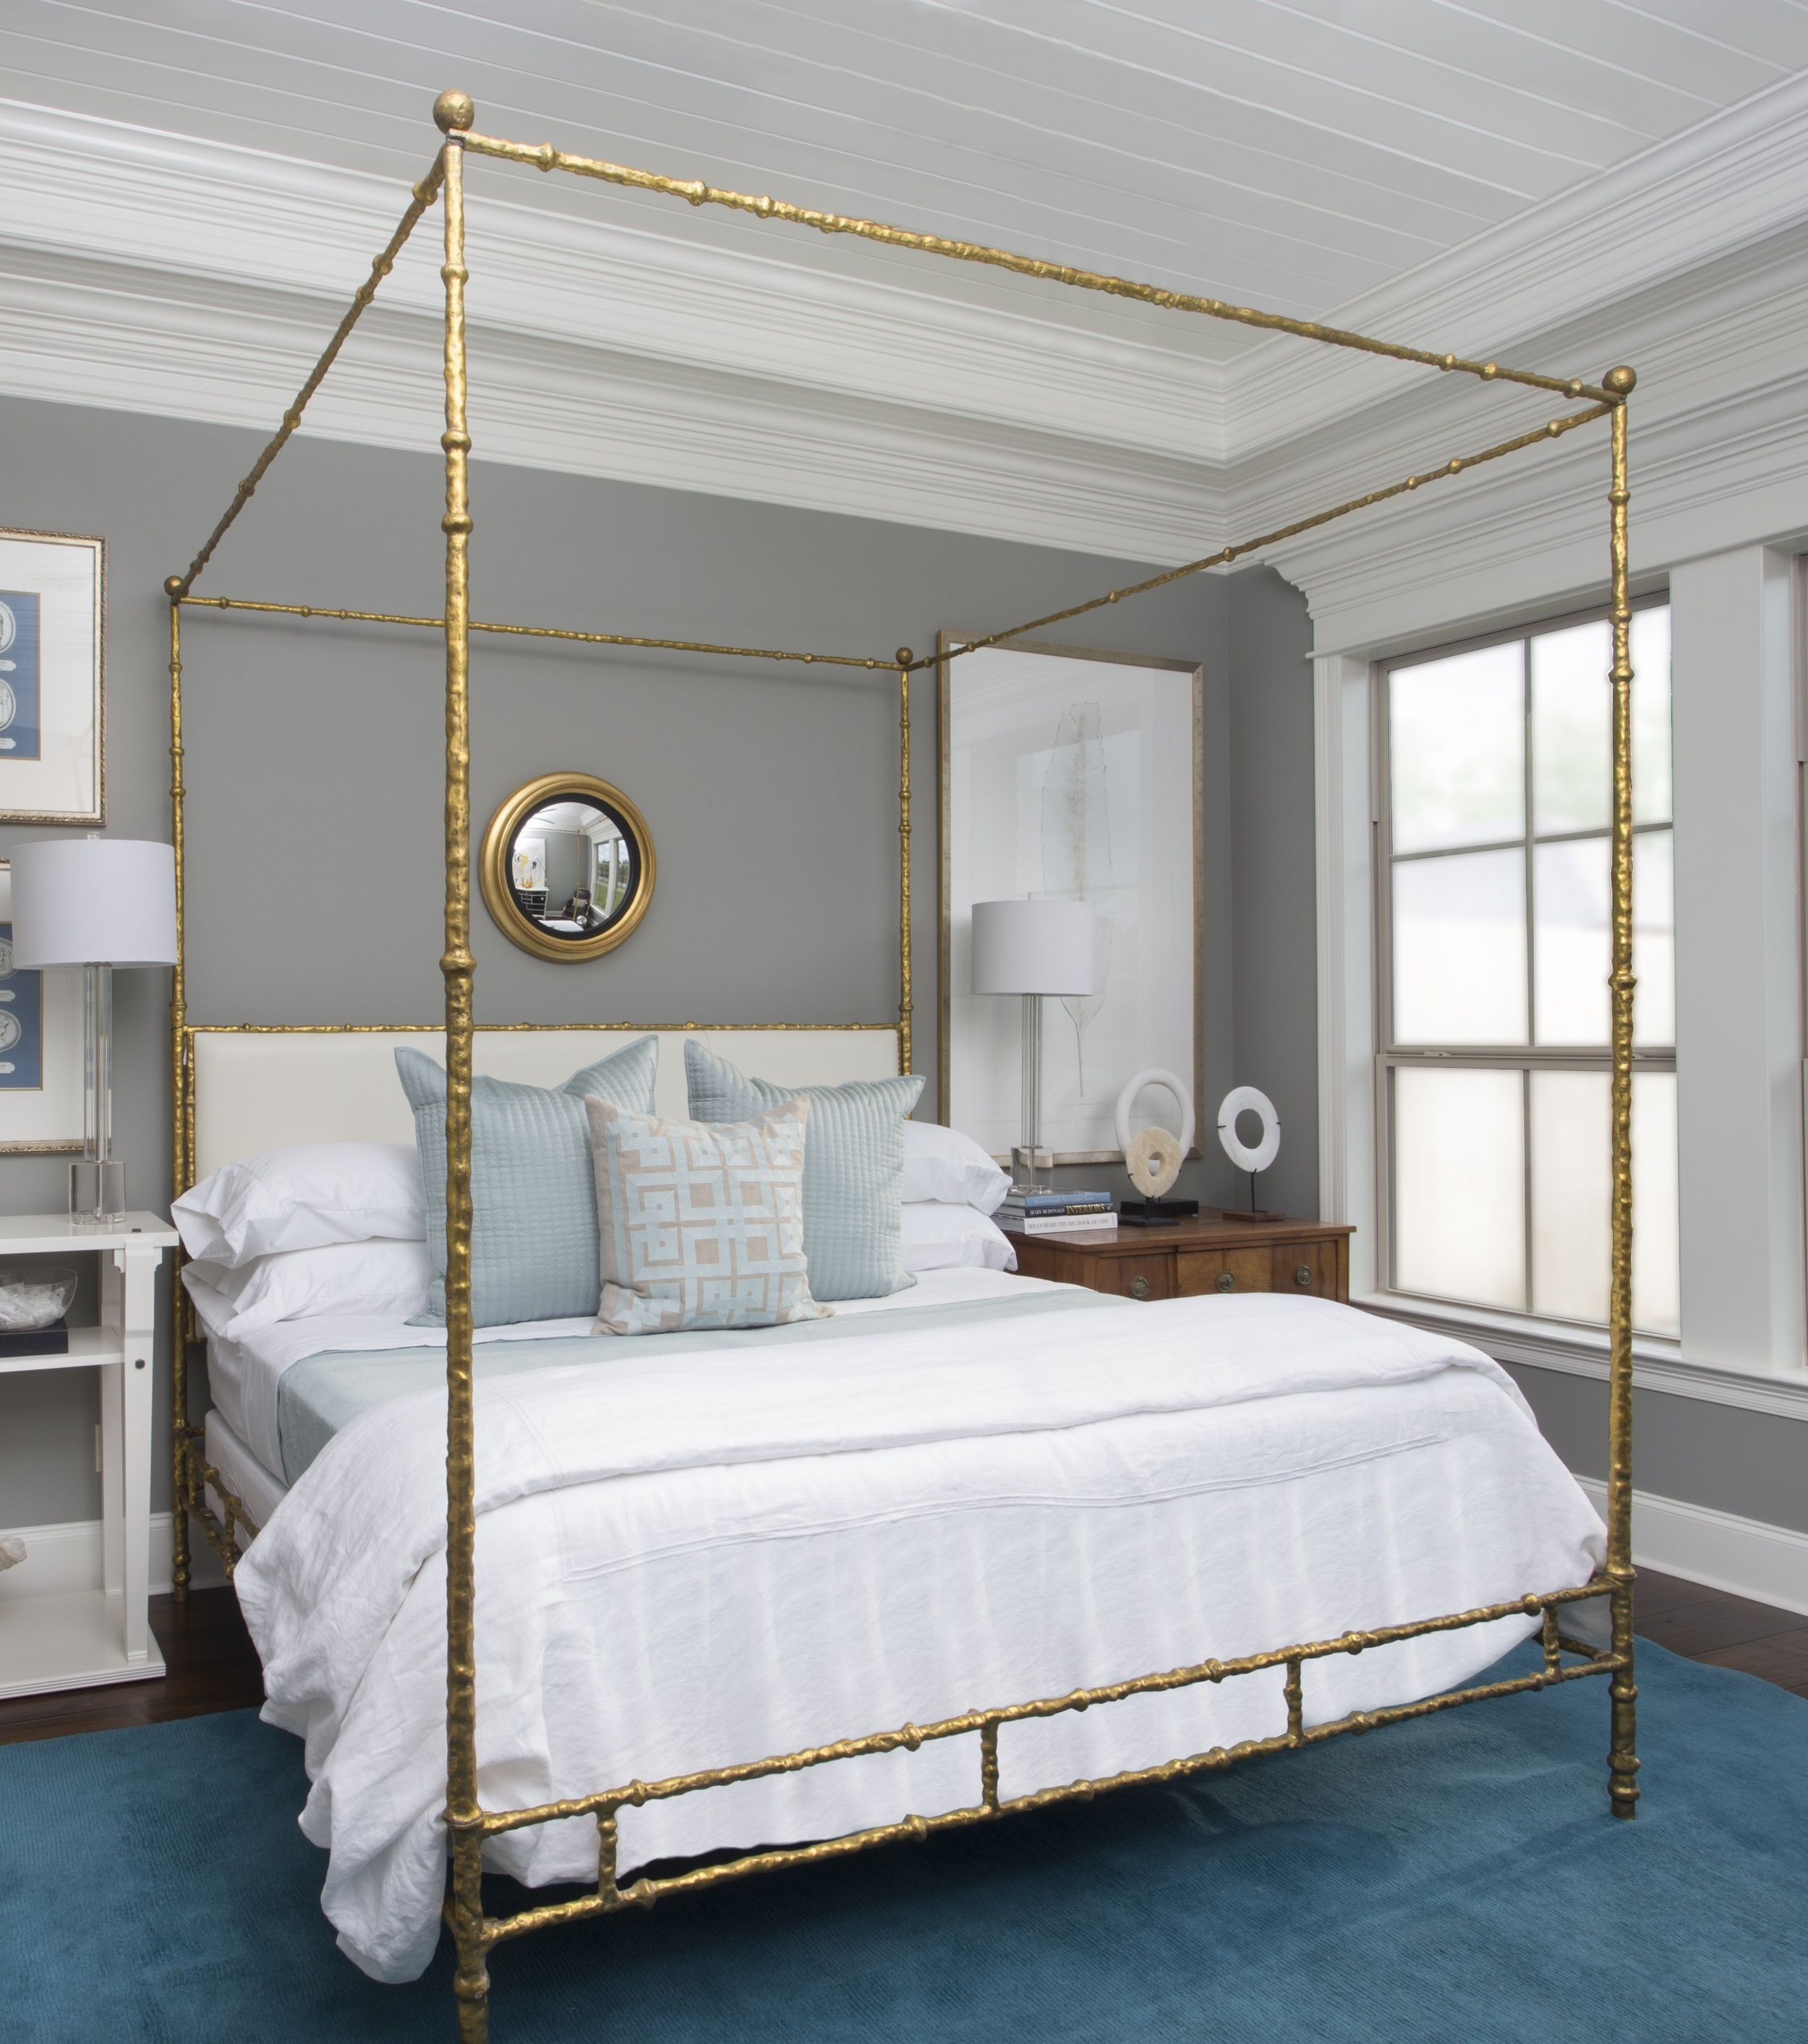 king sized bed by oly ty larkins interiors